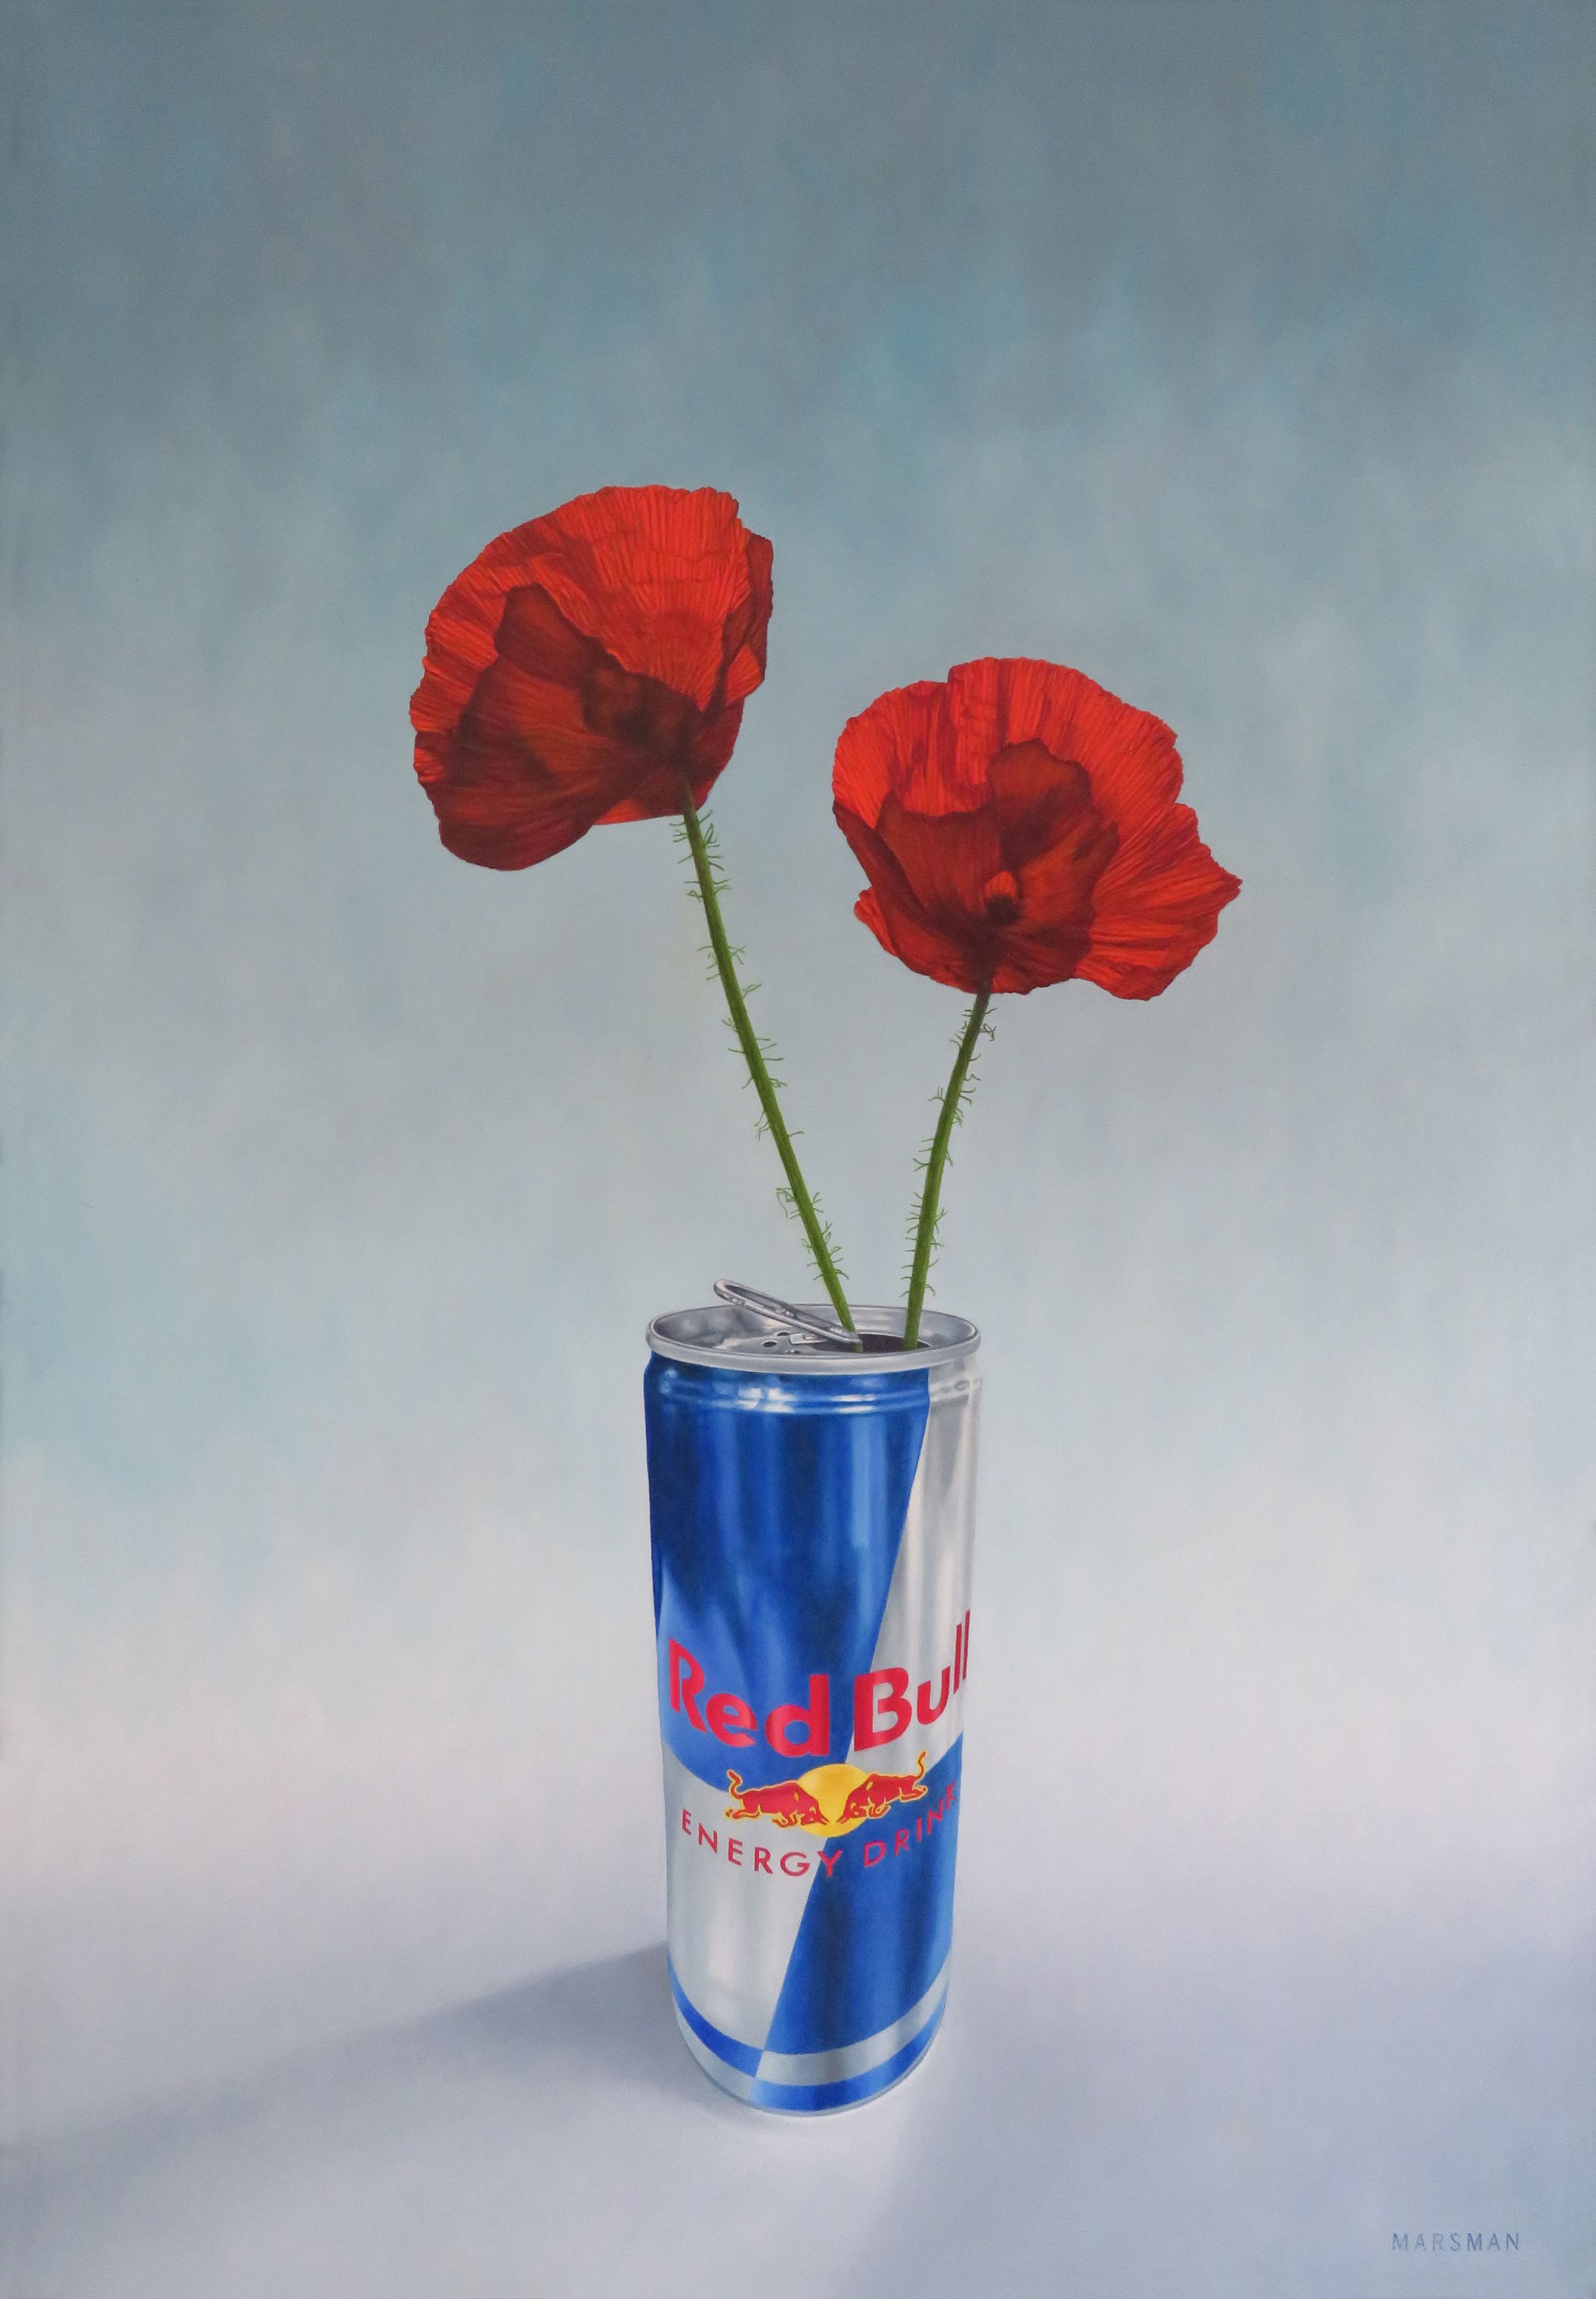 "<b>RED BULL VERSUS RED POPPIES</b> - 50 x 72 cm - oilpaint on panel -   <a style=""color: red; text-decoration: none"" href=""mailto:jpgpmarsman@onsbrabantnet.nl"">BESTEL</a>"